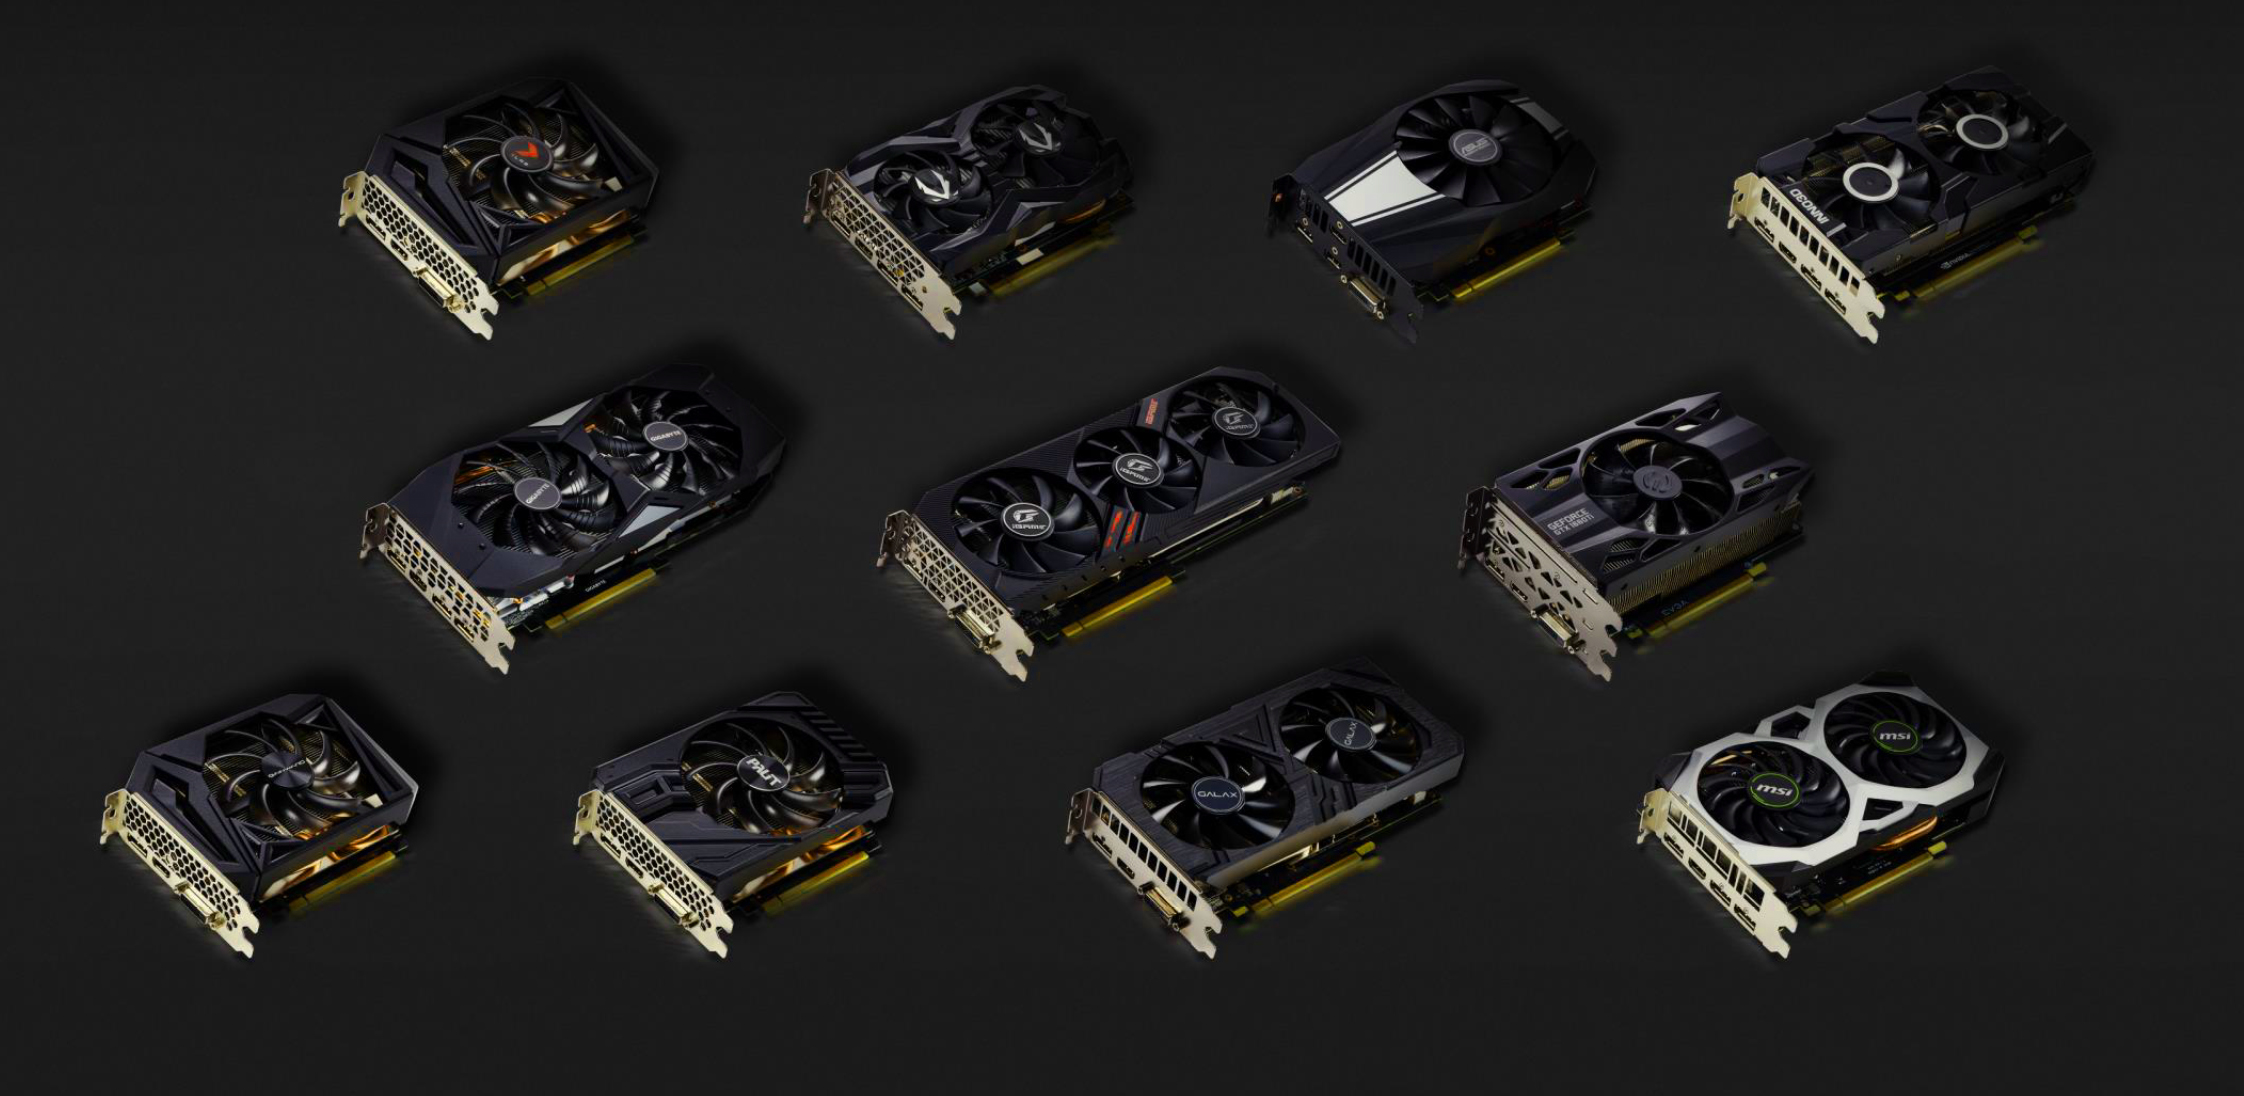 Photo of the latest Turing? New details about the GeForce GTX 1650 card